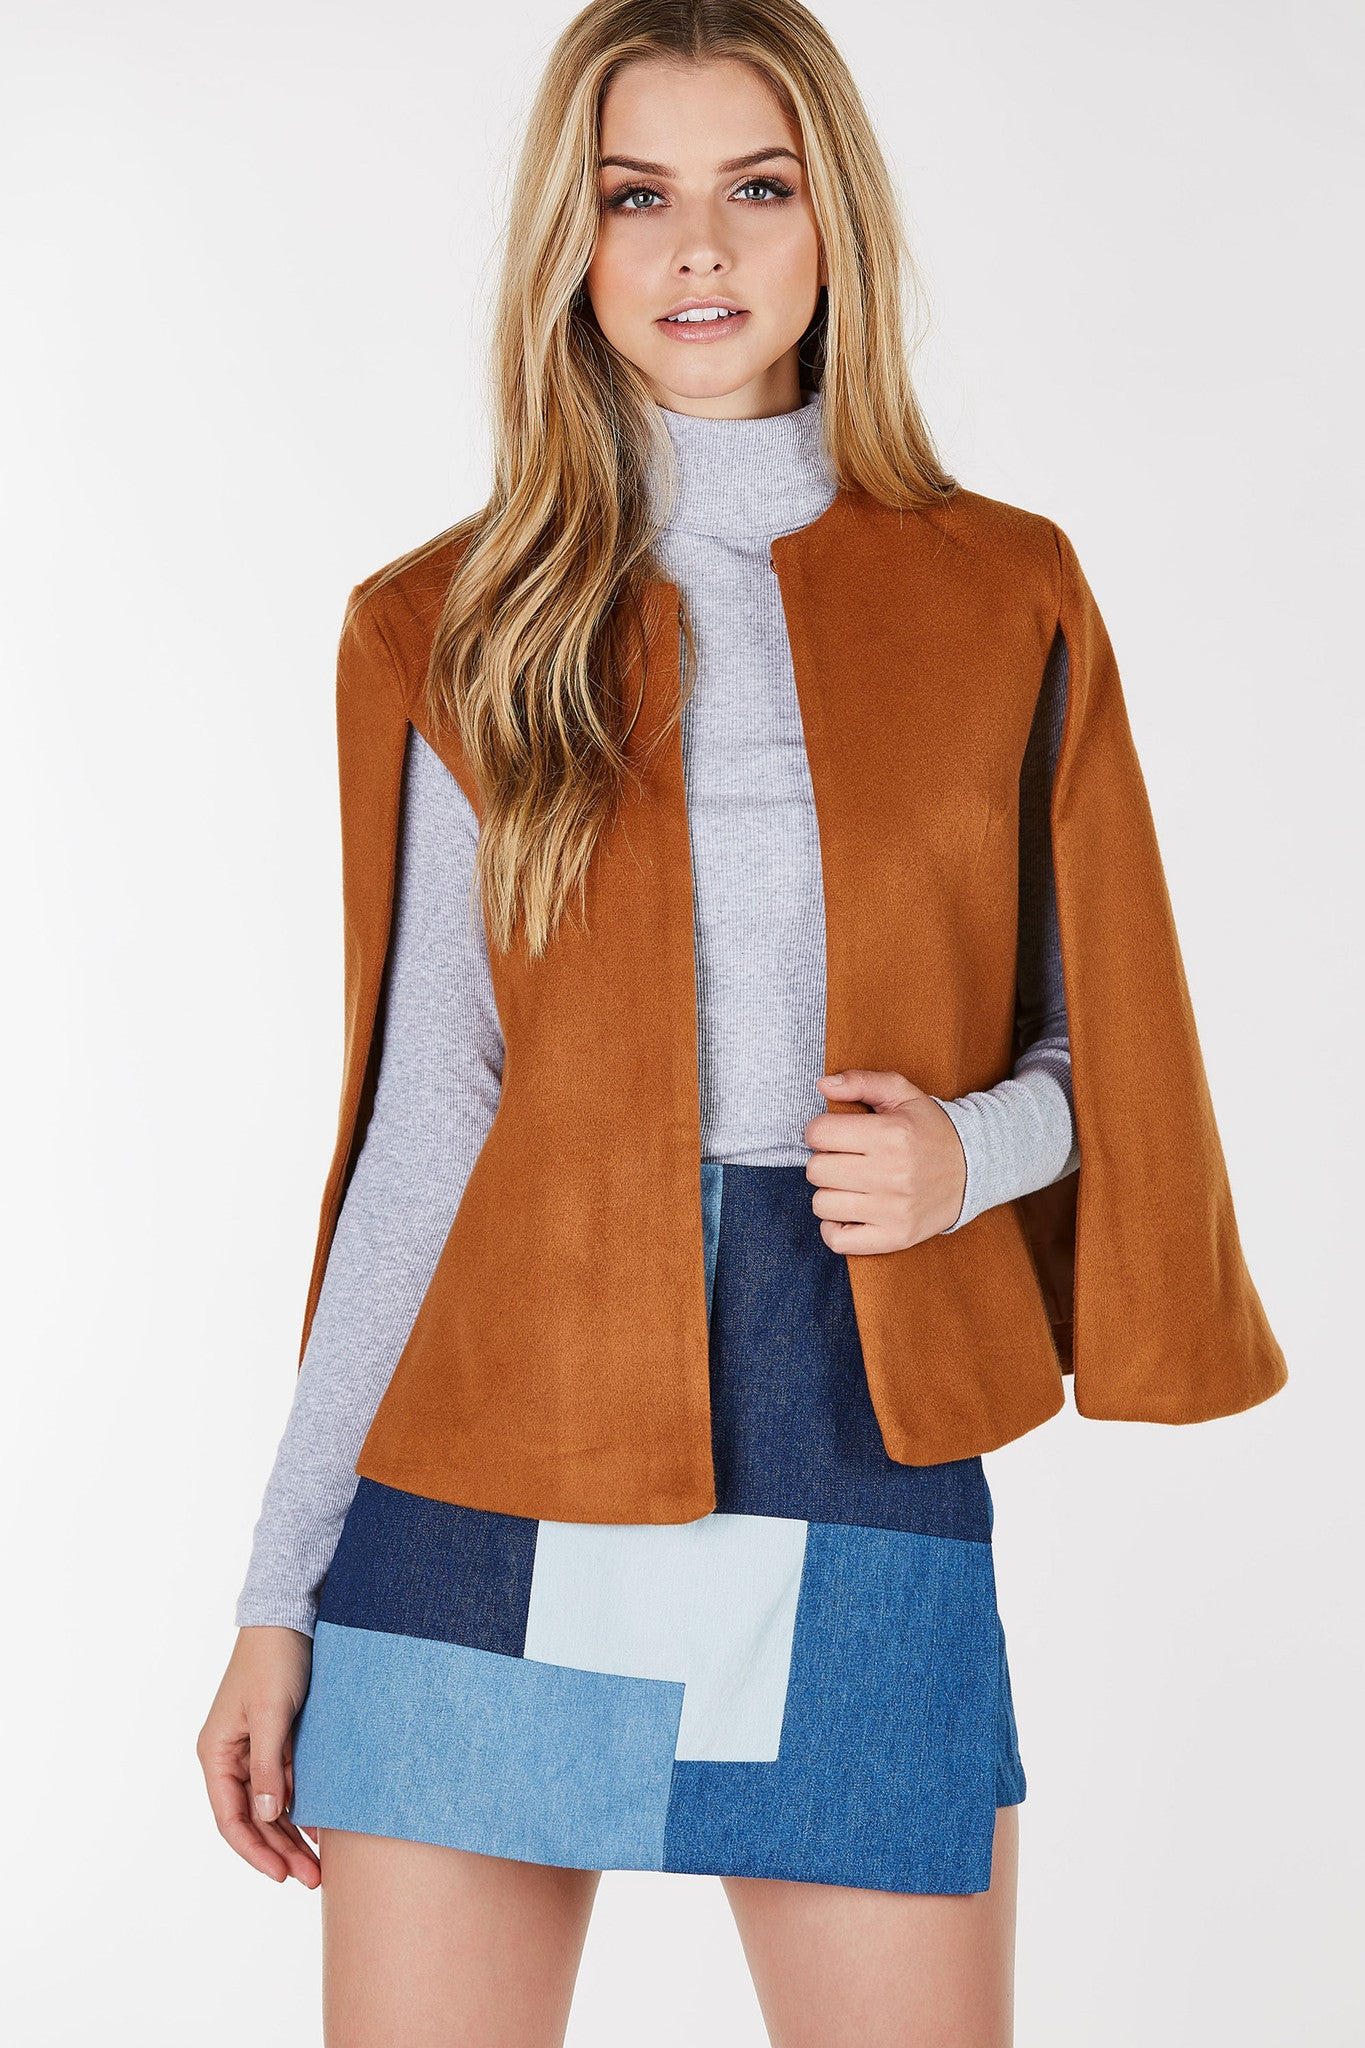 Round neck cape jacket with slits for each arm. Open front with straight hem alla round.